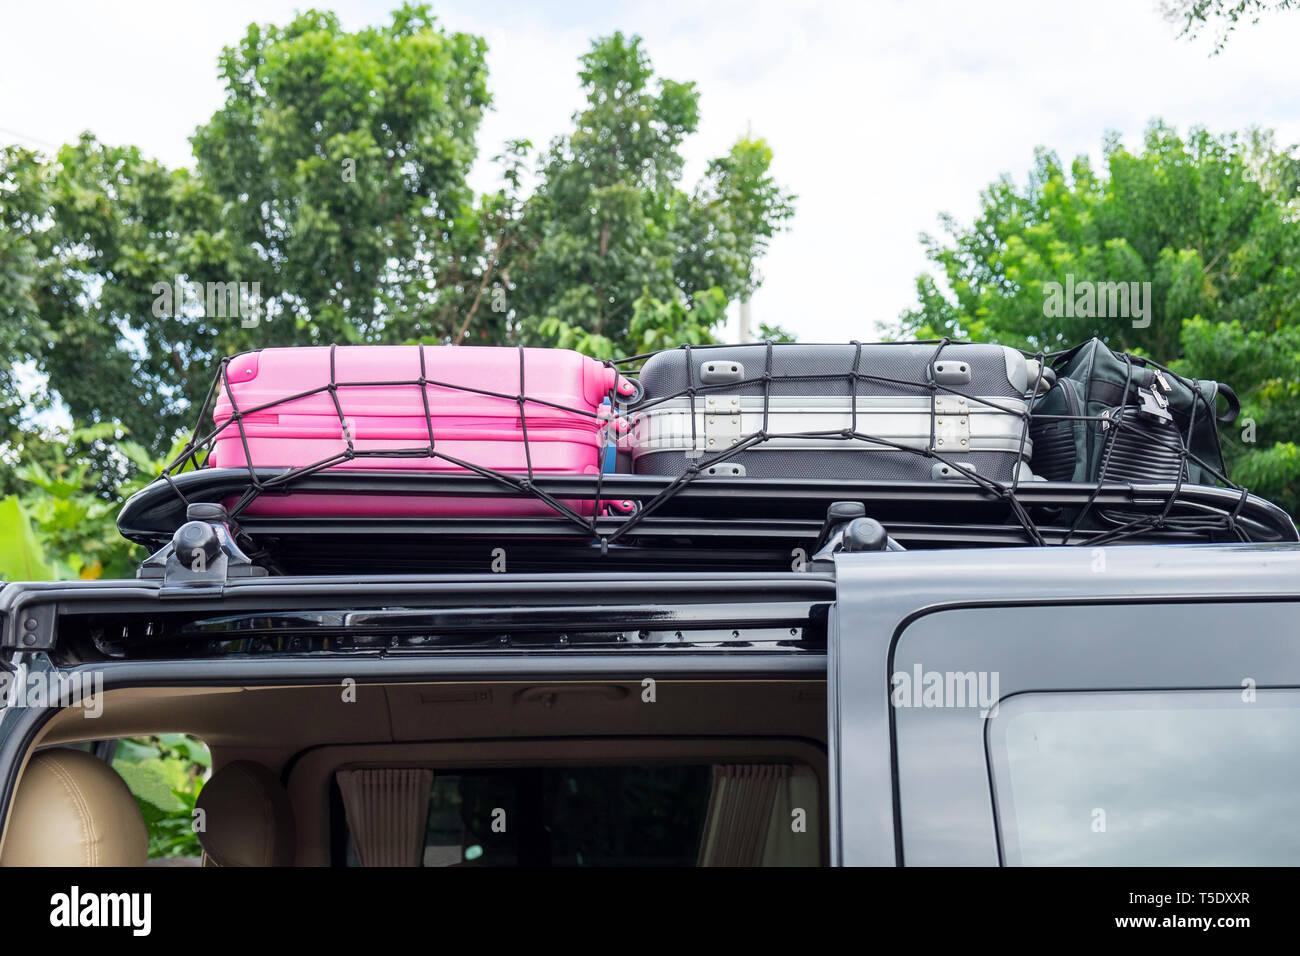 Rack on the roof van color luggage stack - Stock Image